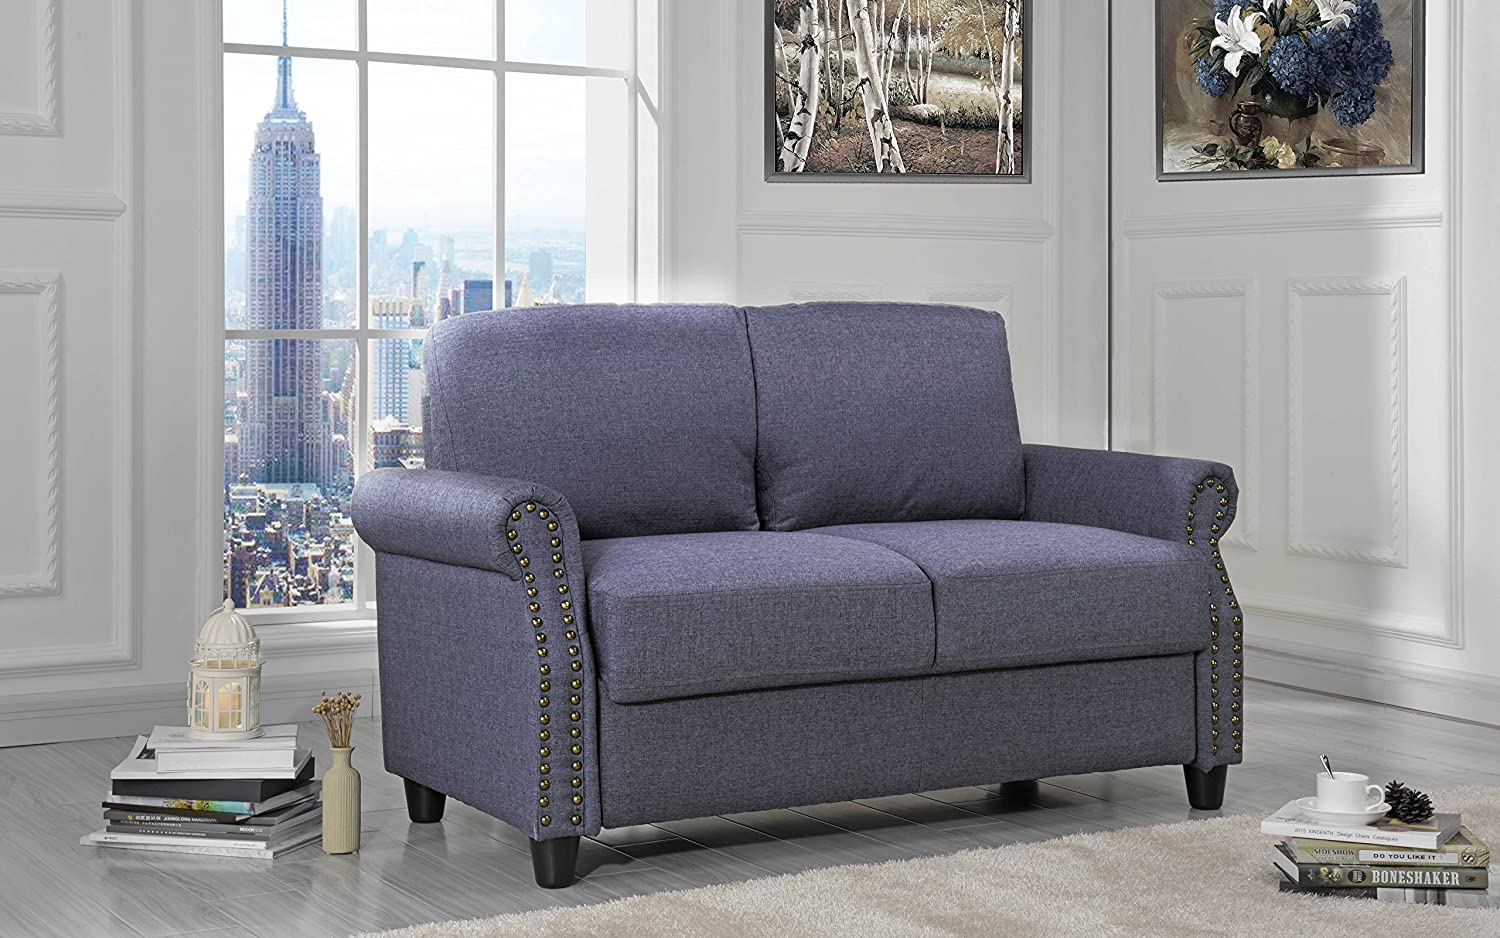 Sofamania Classic Living Room Linen Loveseat with Nailhead Trim and Storage Space (Blue) EXP89-2S